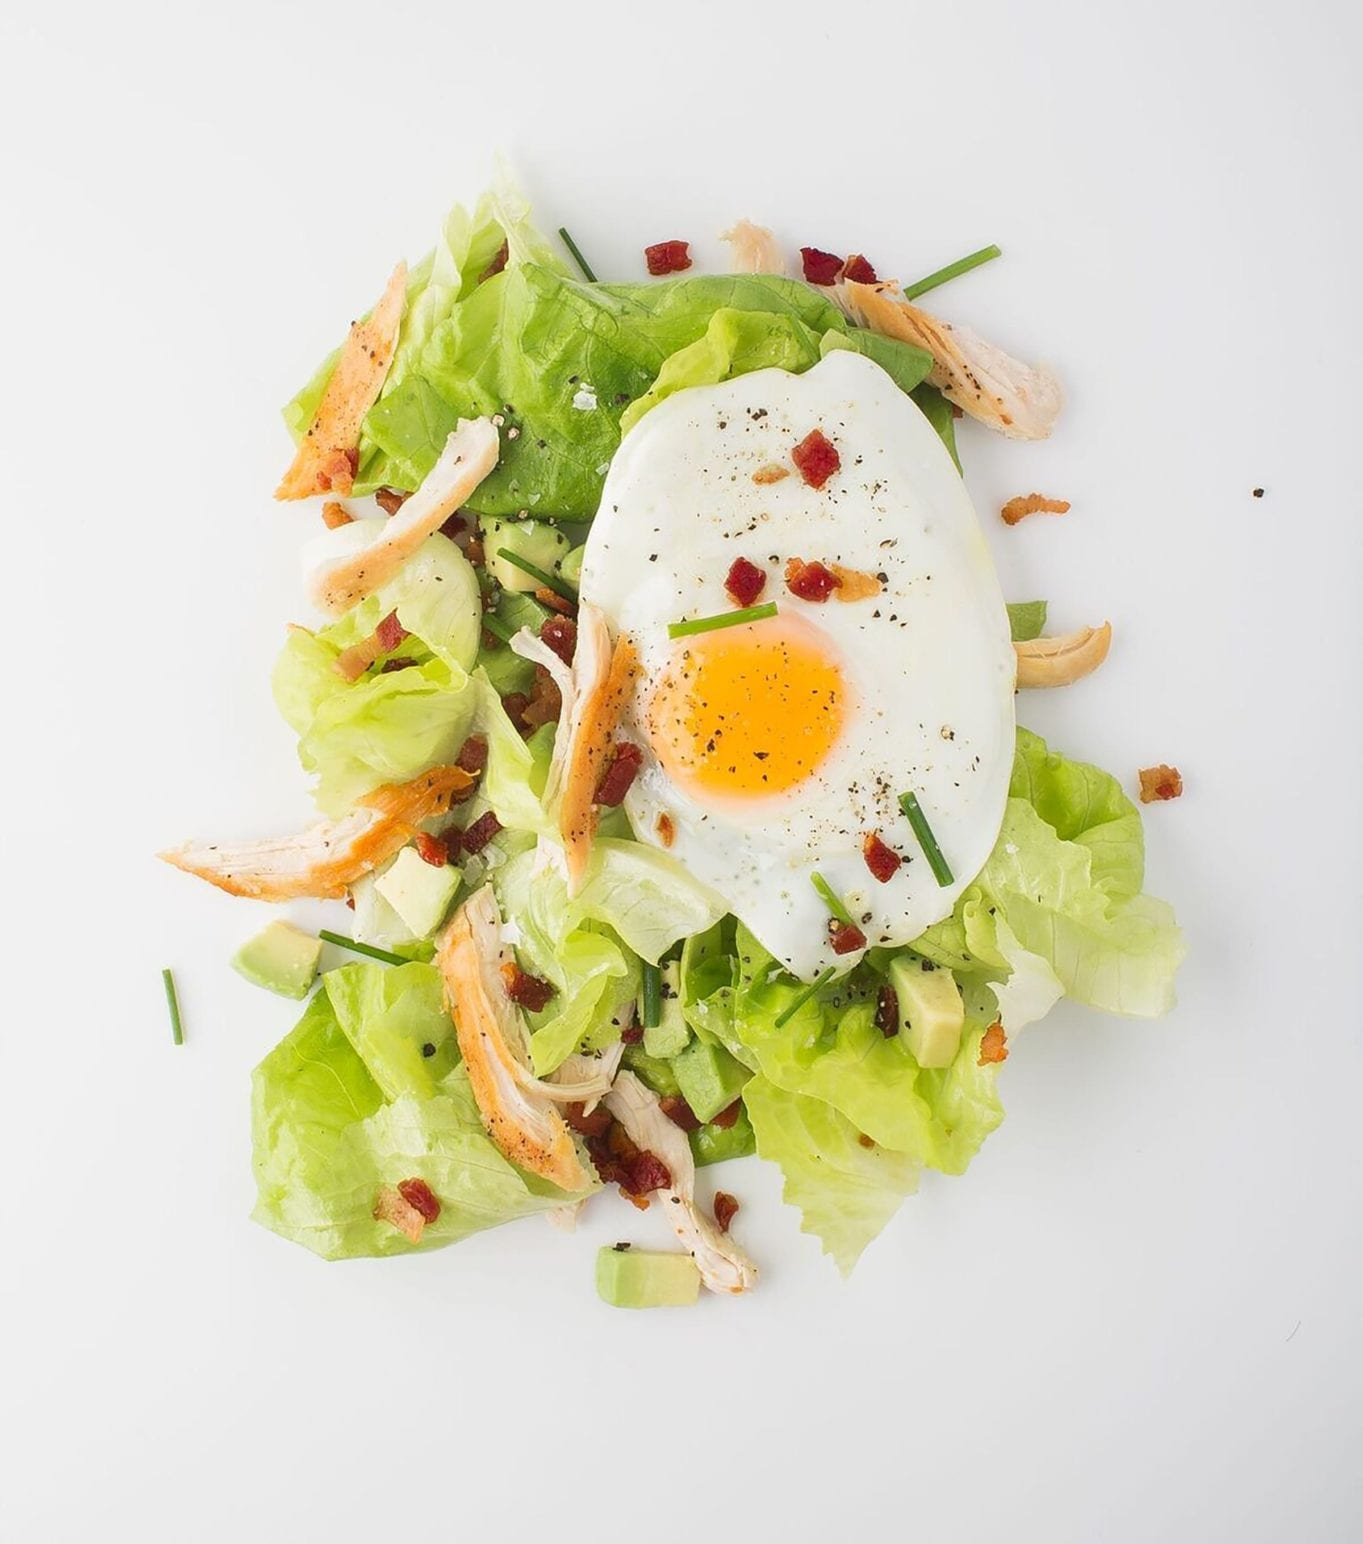 Gluten Free Salad Recipe Chicken Avocado And Bacon Salad With Fried Egg And Bacon Dressing